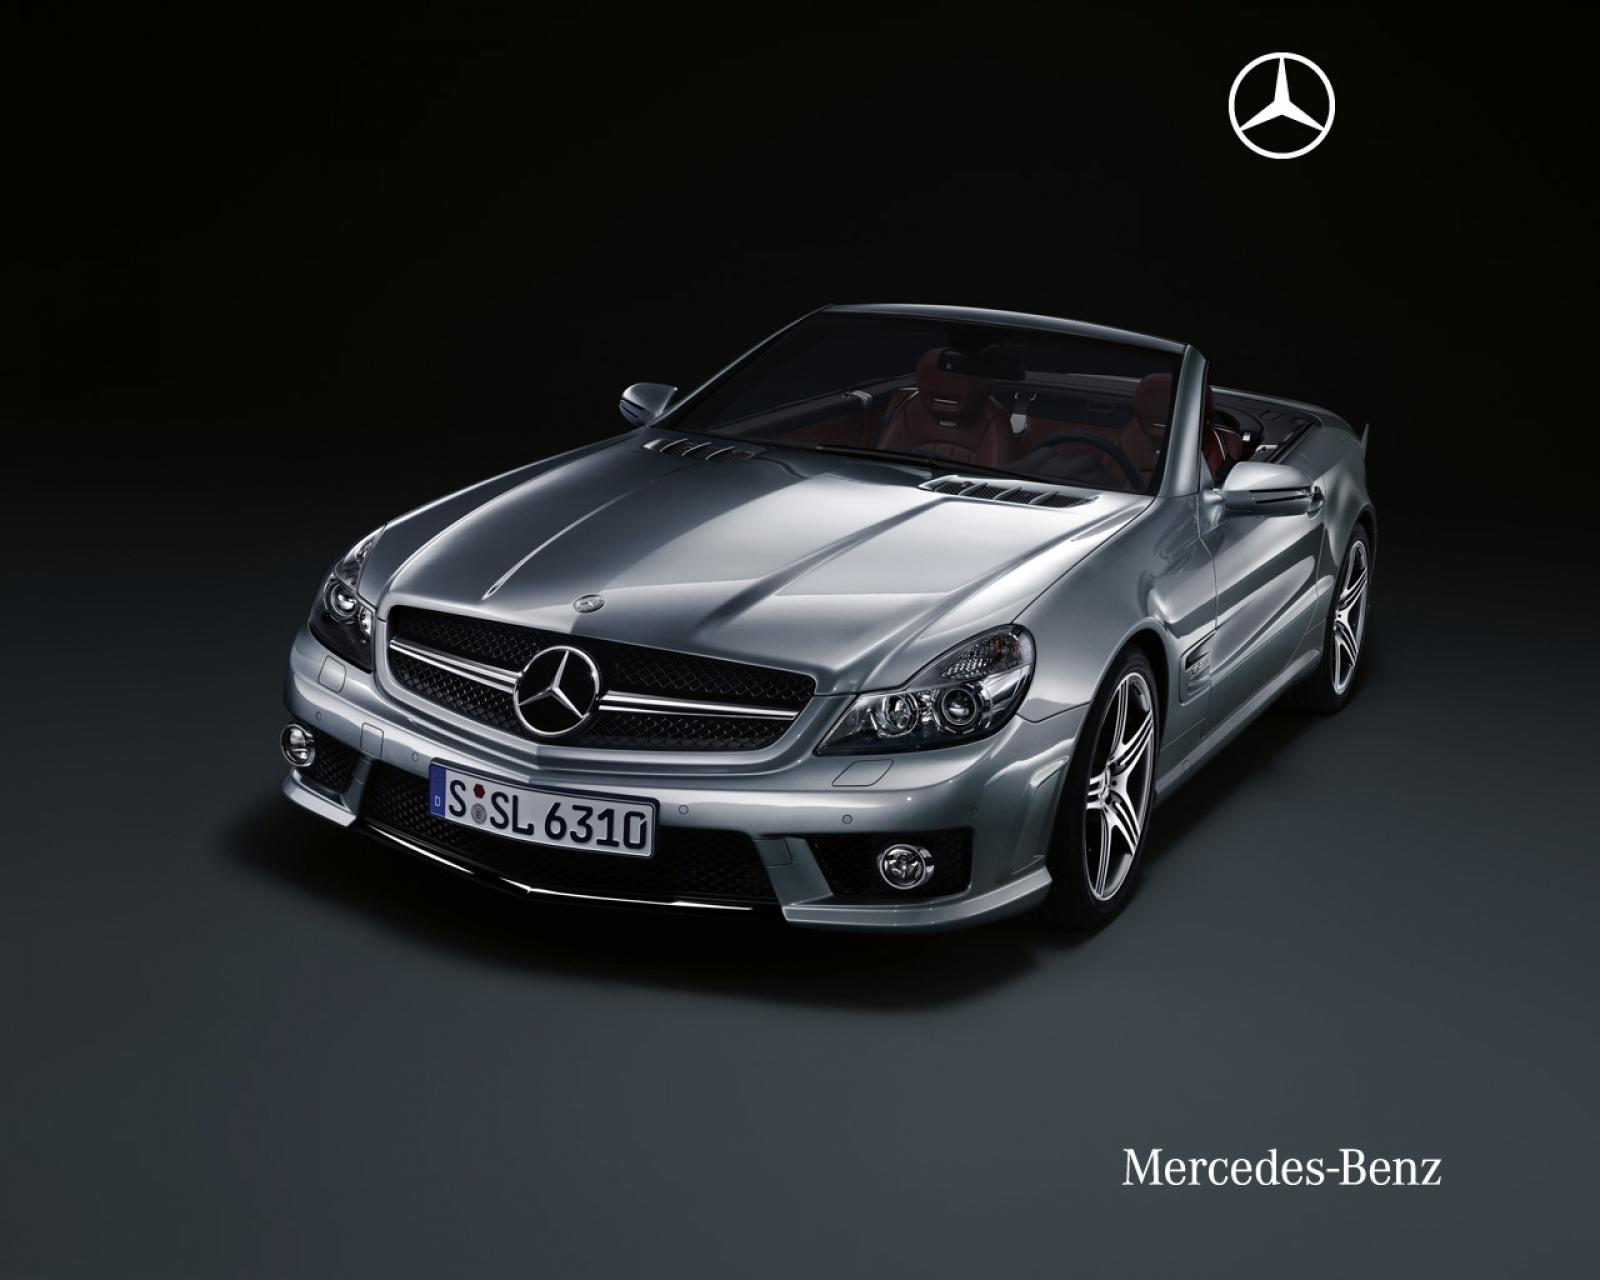 2011 mercedes benz sl class information and photos for Mercedes benz sl class